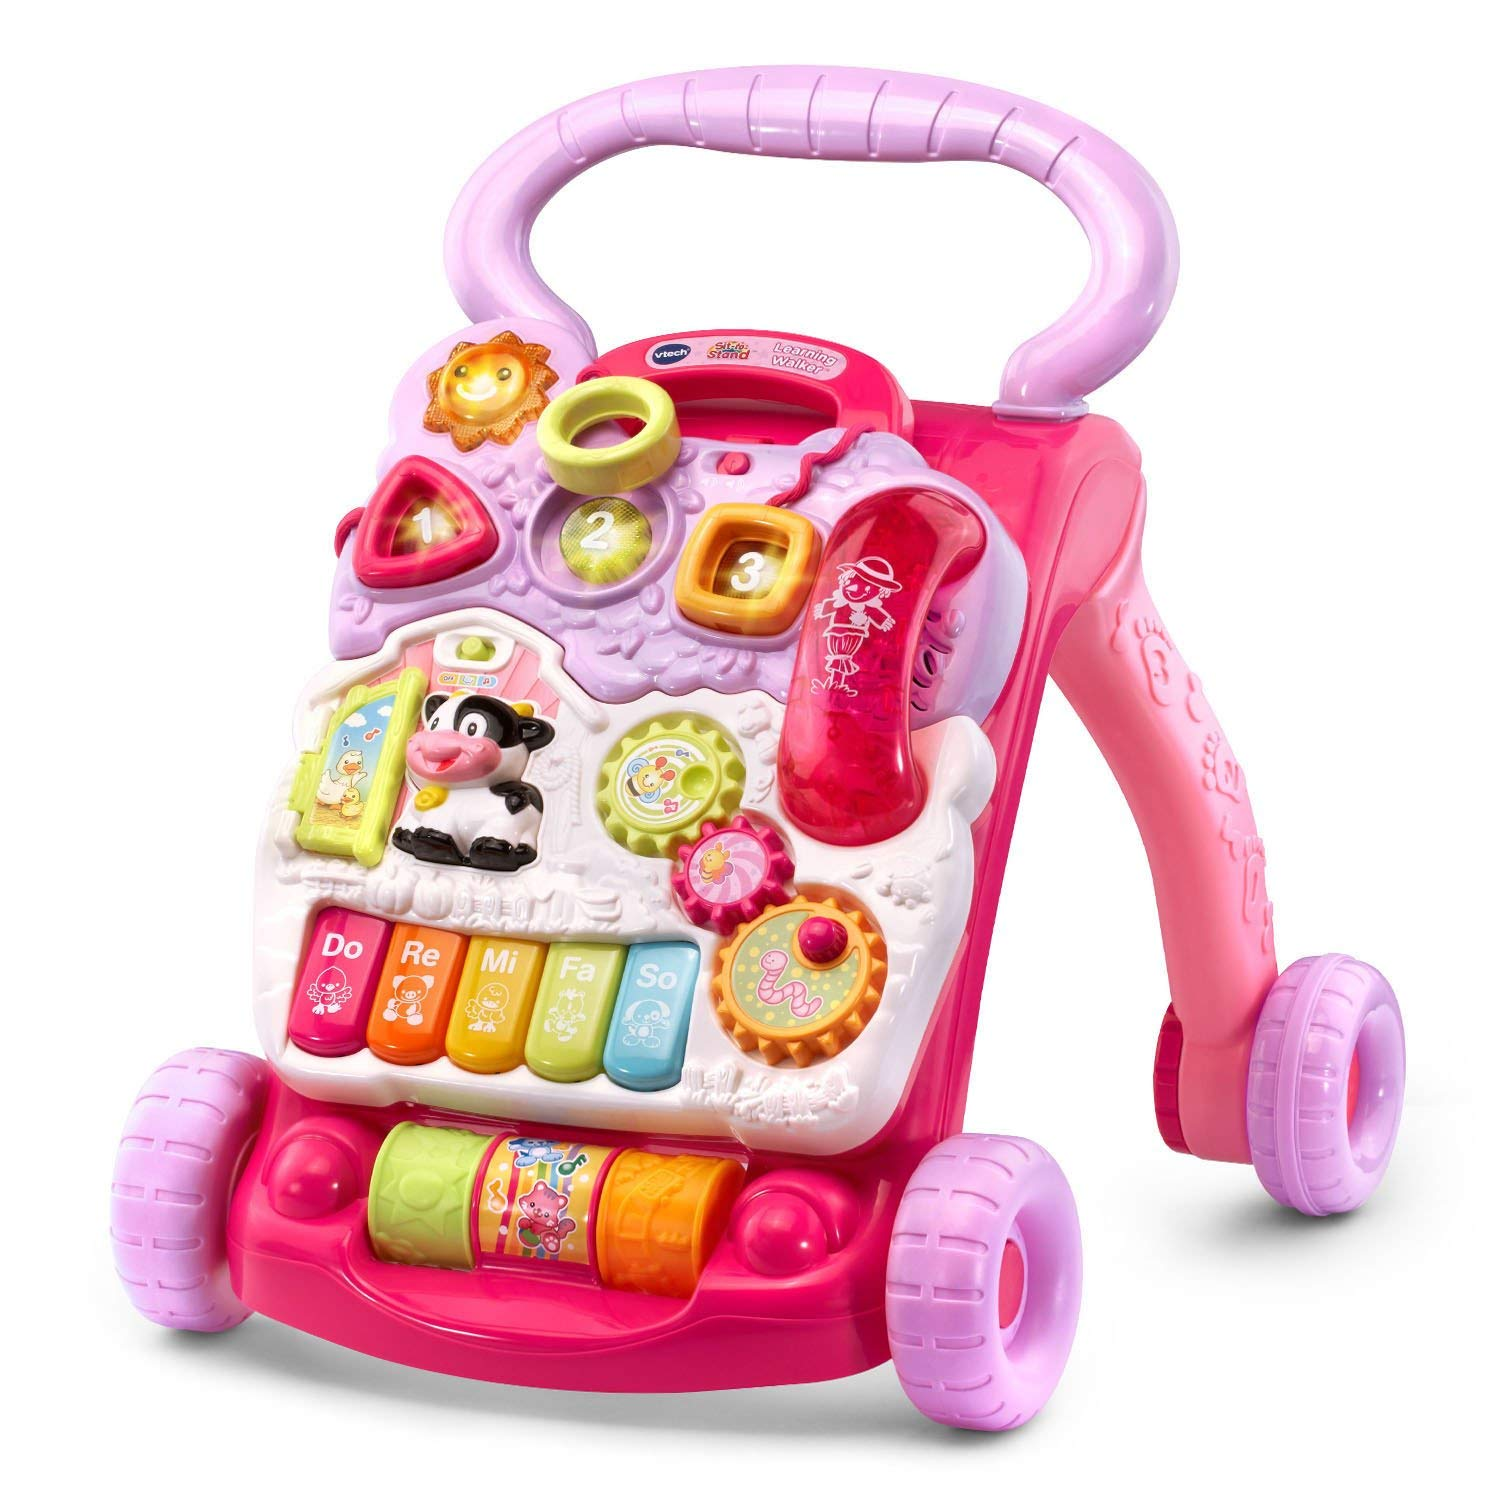 VTech Sit-to-Stand Learning Walker - Pink - Online Exclusive (Standard Packaging)